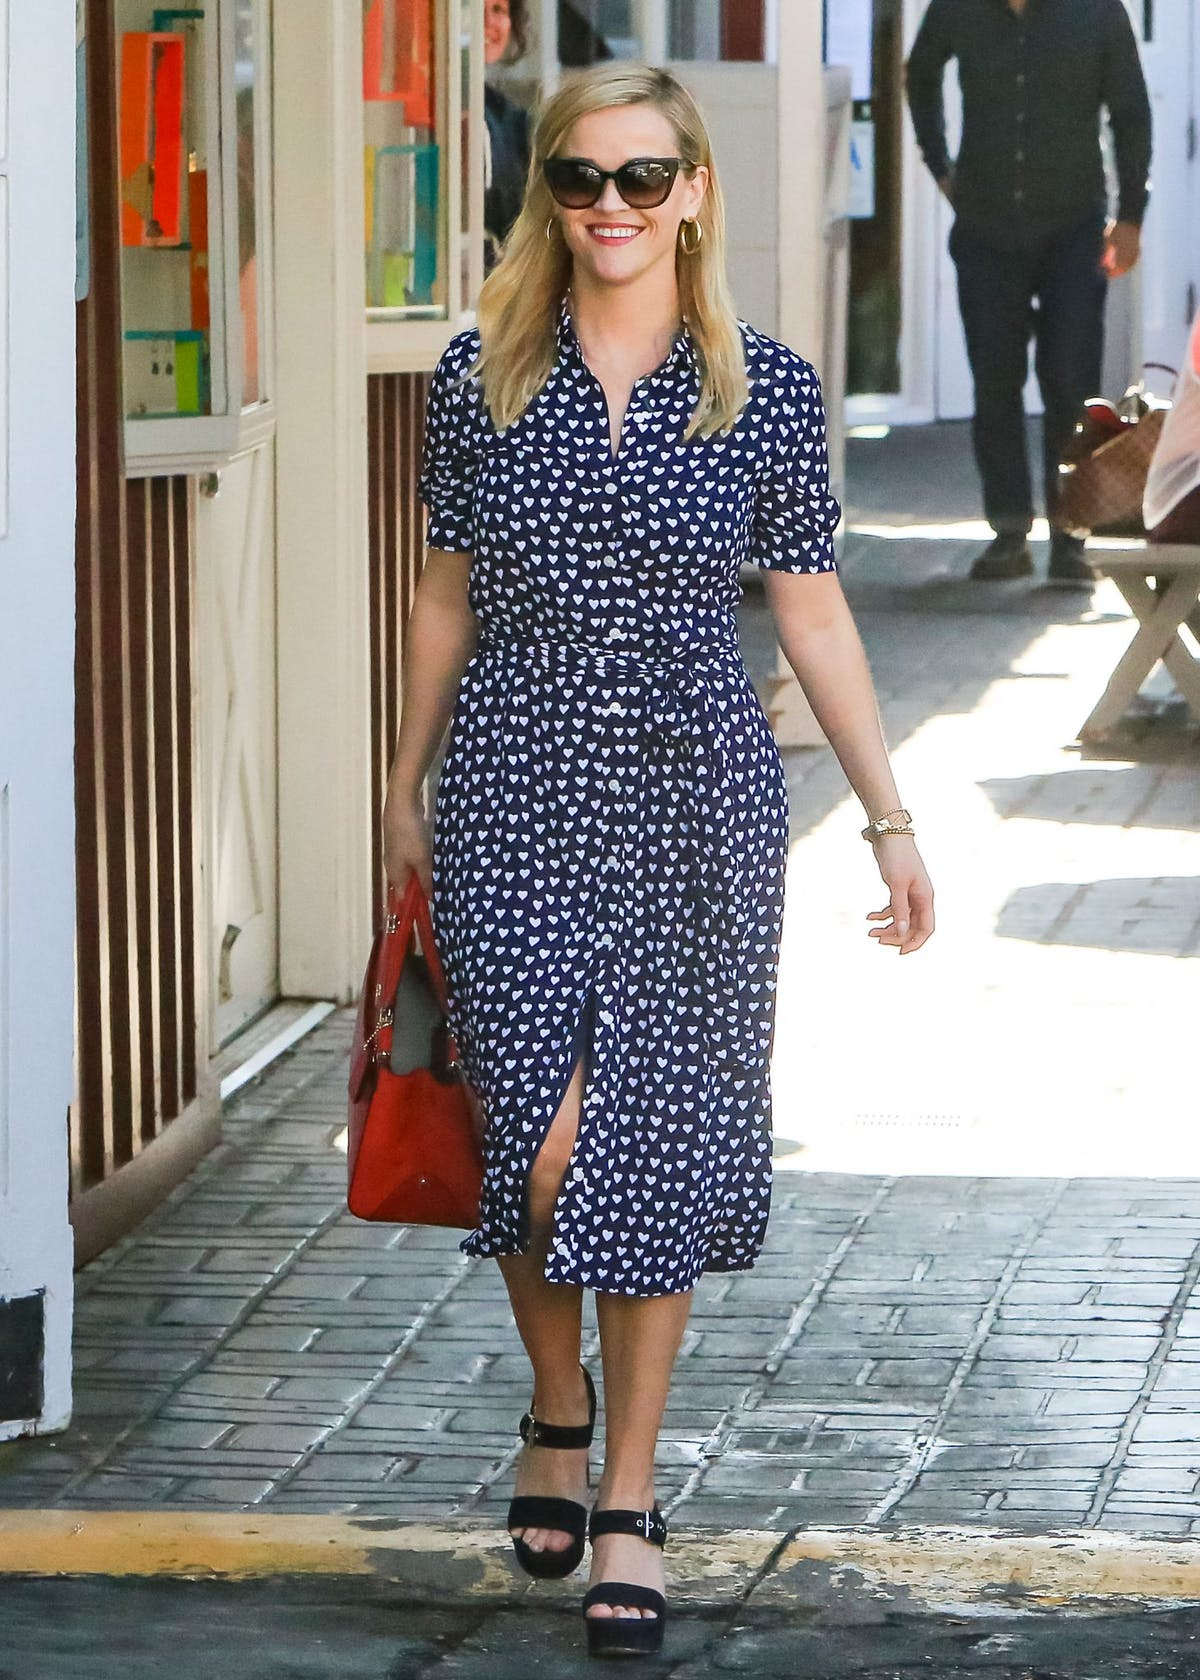 822f7b49 Get daily outfit inspiration with our round-up of the best A-list ...